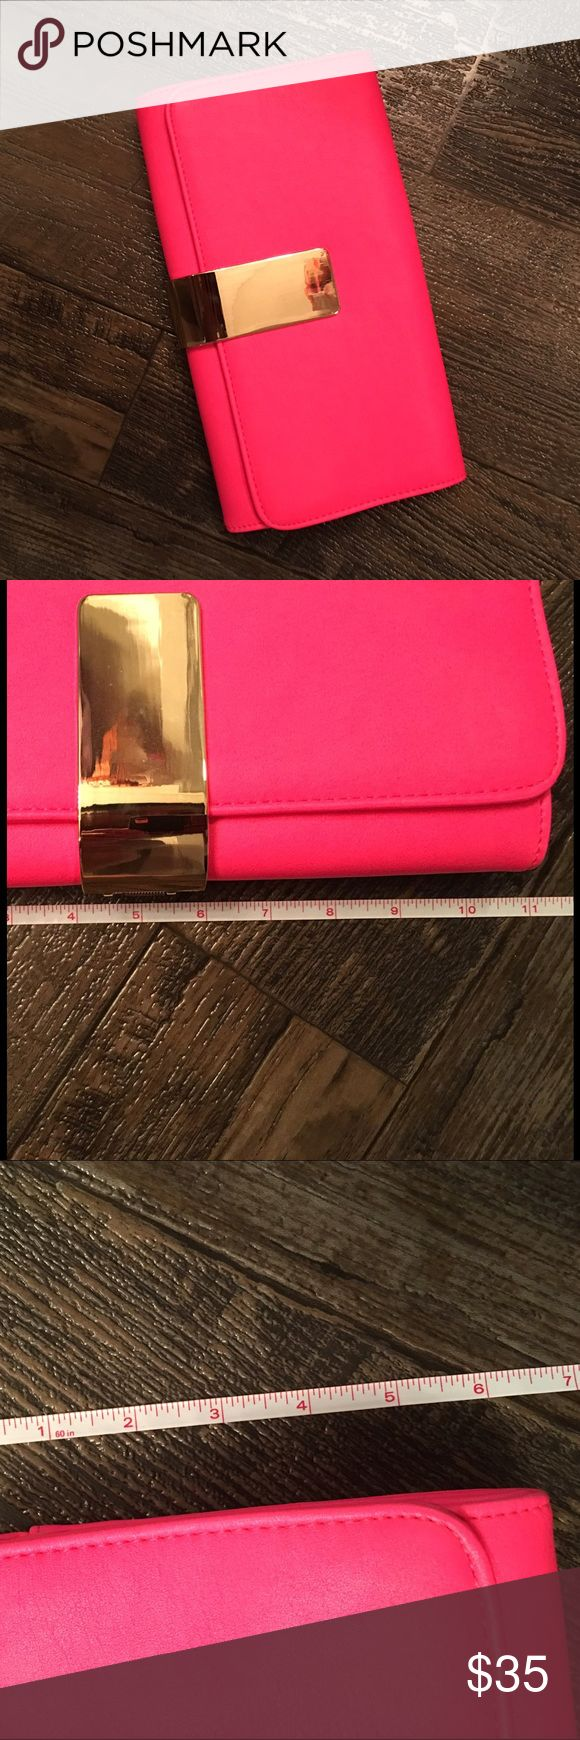 Neon clutch Hot pink clutch. Just like new! No chain to turn it into shoulder bag but other than that you would think it's new. Bags Clutches & Wristlets